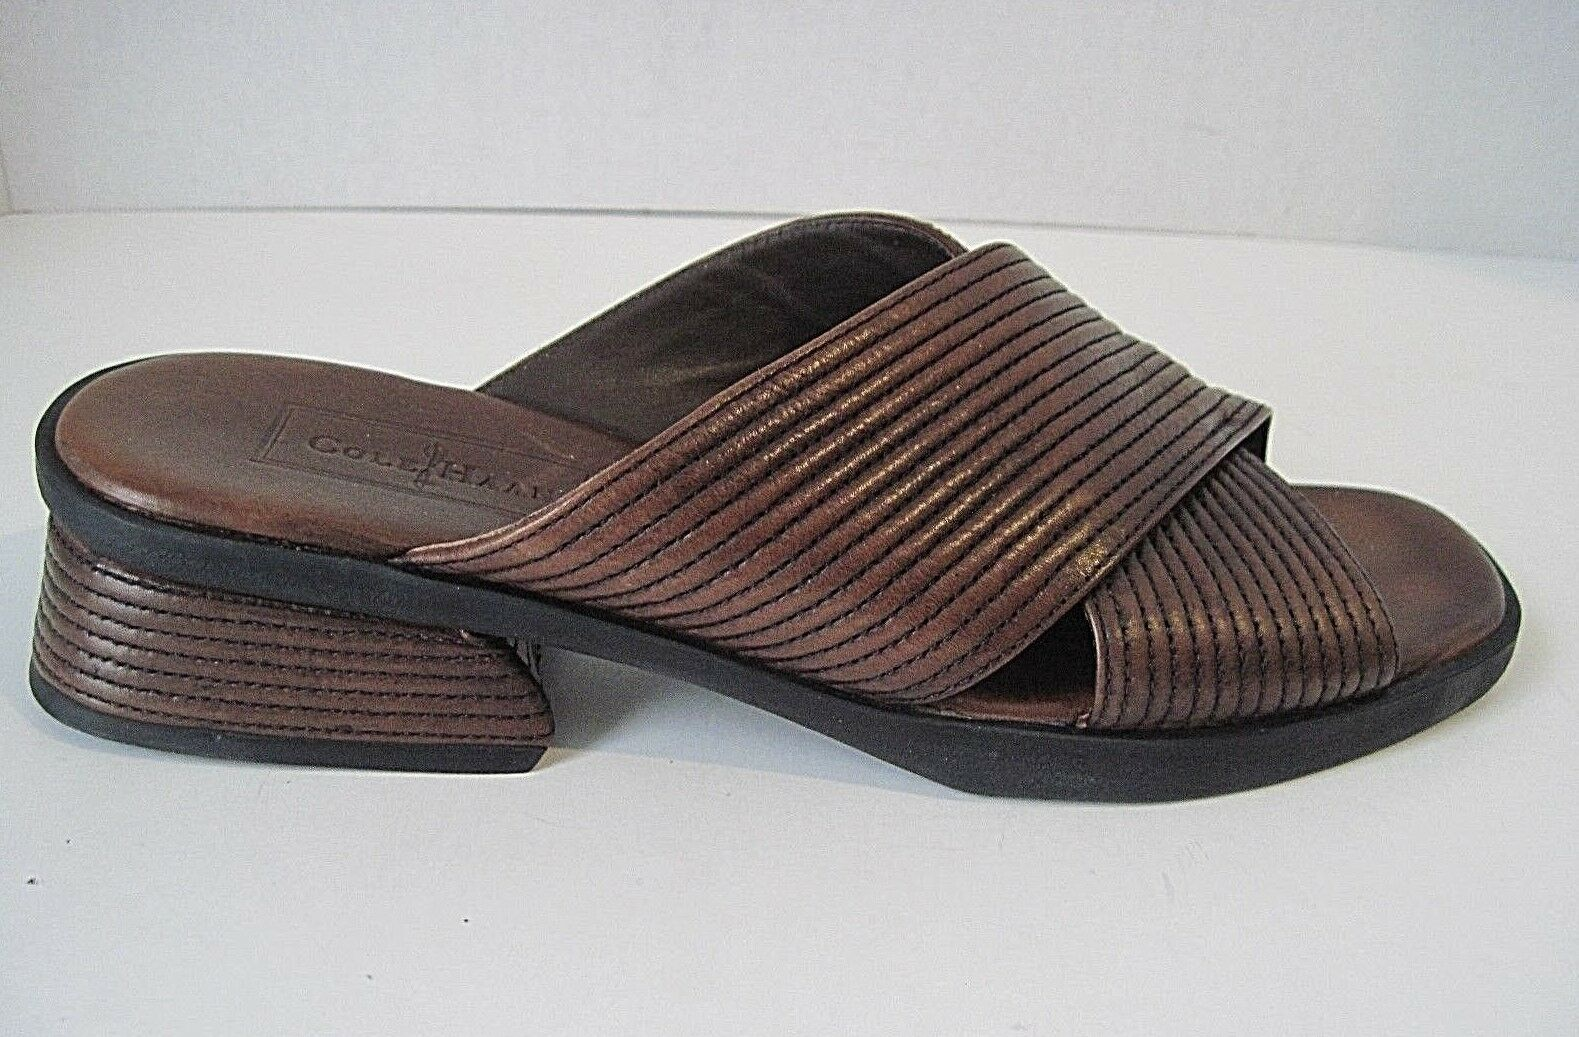 COLE HAAN STUDIO DESIGNER BROWN OPEN TOE SLIDE SANDAL SHOE SIZE 8AA